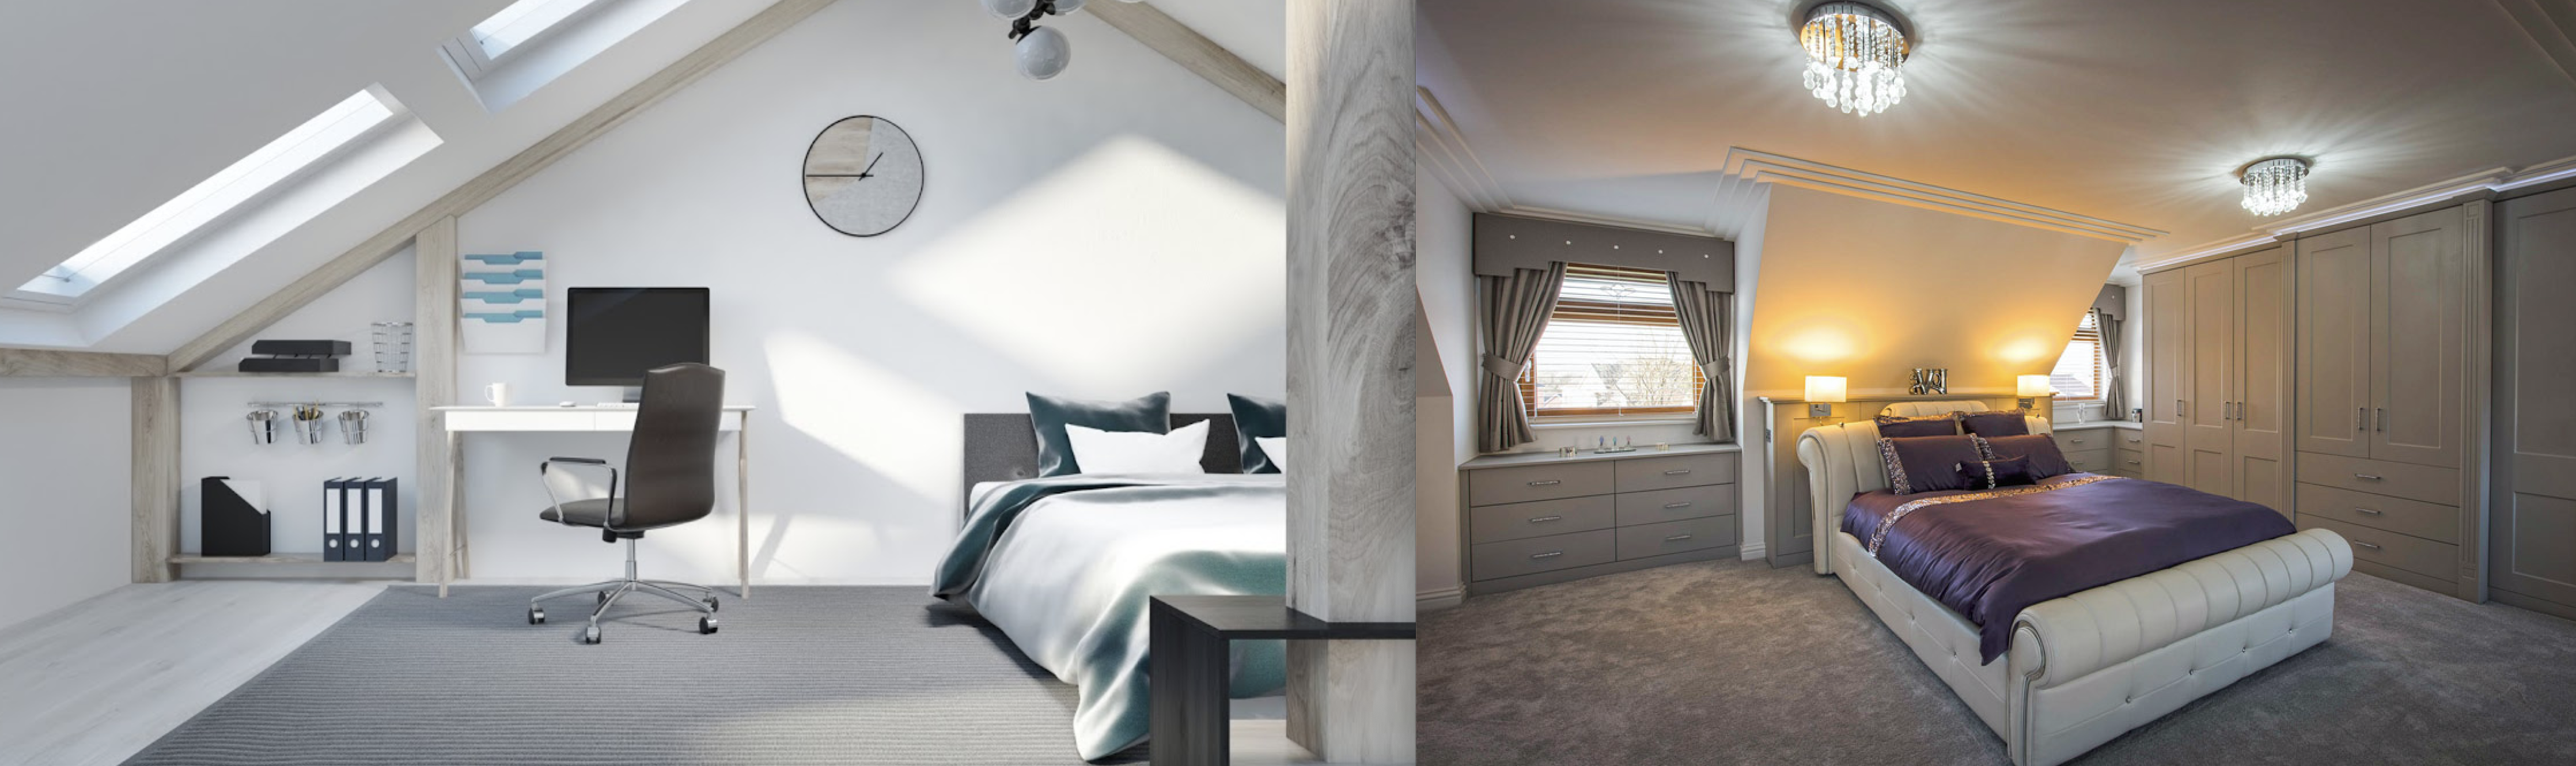 Beautiful Dormer loft conversion in Tameside, creating a new master bedroom with private bathroom, walk in wardrobe and stunning new oak staircase with Velux polyurethane SK06 GPU windows.